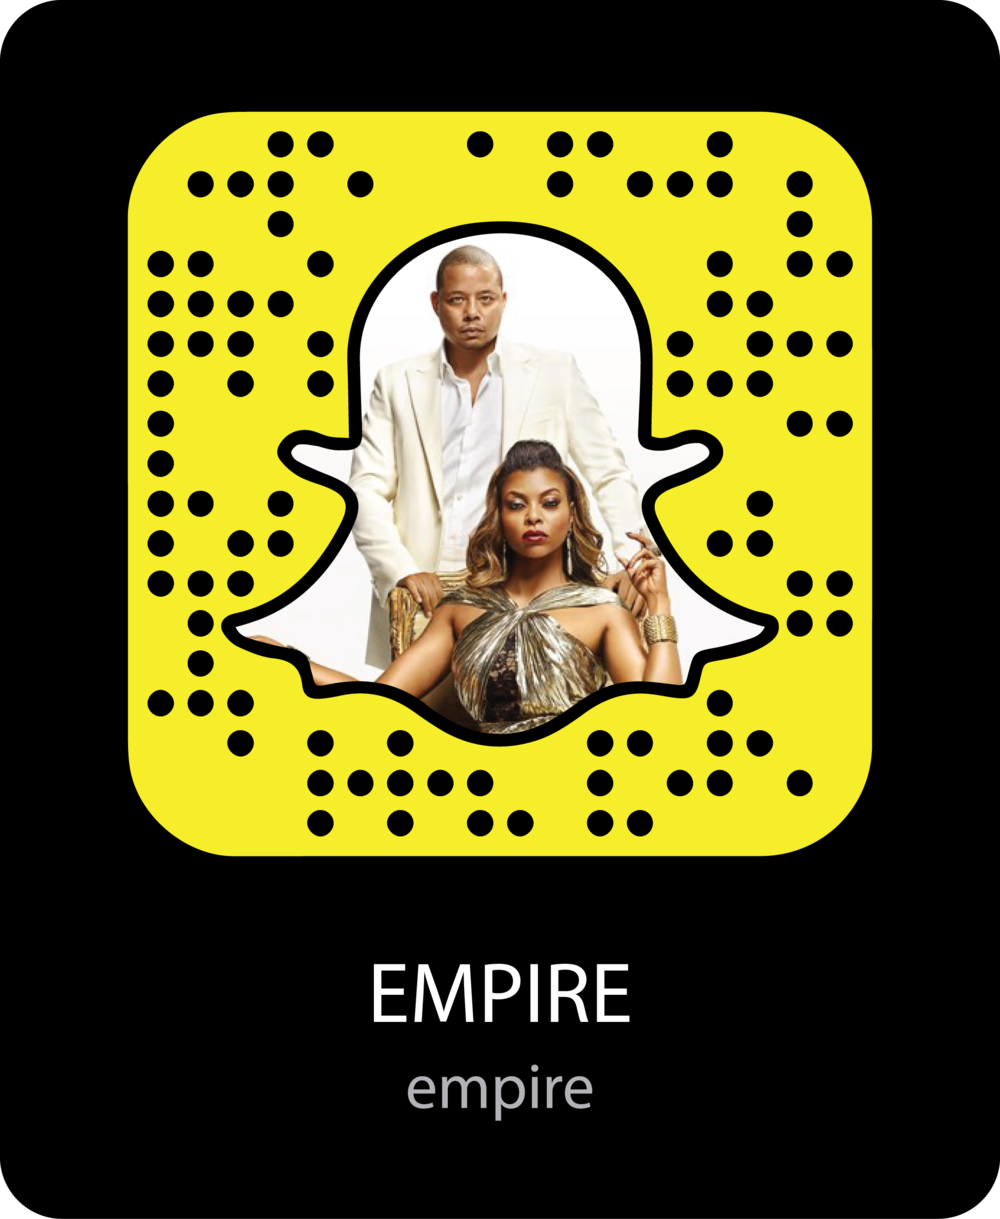 empire-Brands-snapchat-snapcode.png